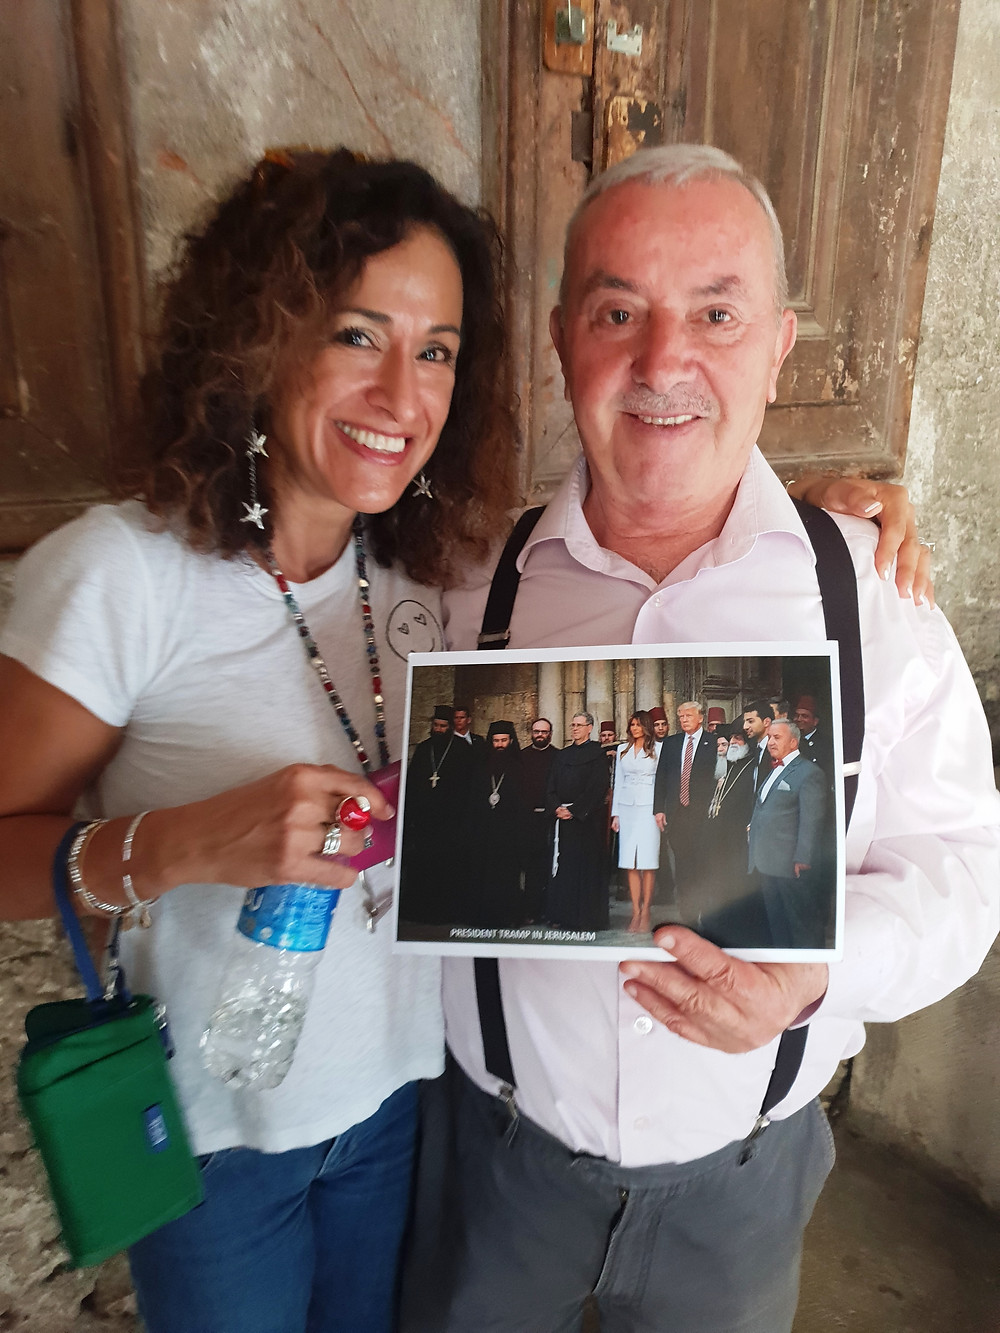 A tourst from Hawaii with the Holy Sepulcher Door Opener Mr. Nuseibeh, keeping his photo with President Trump